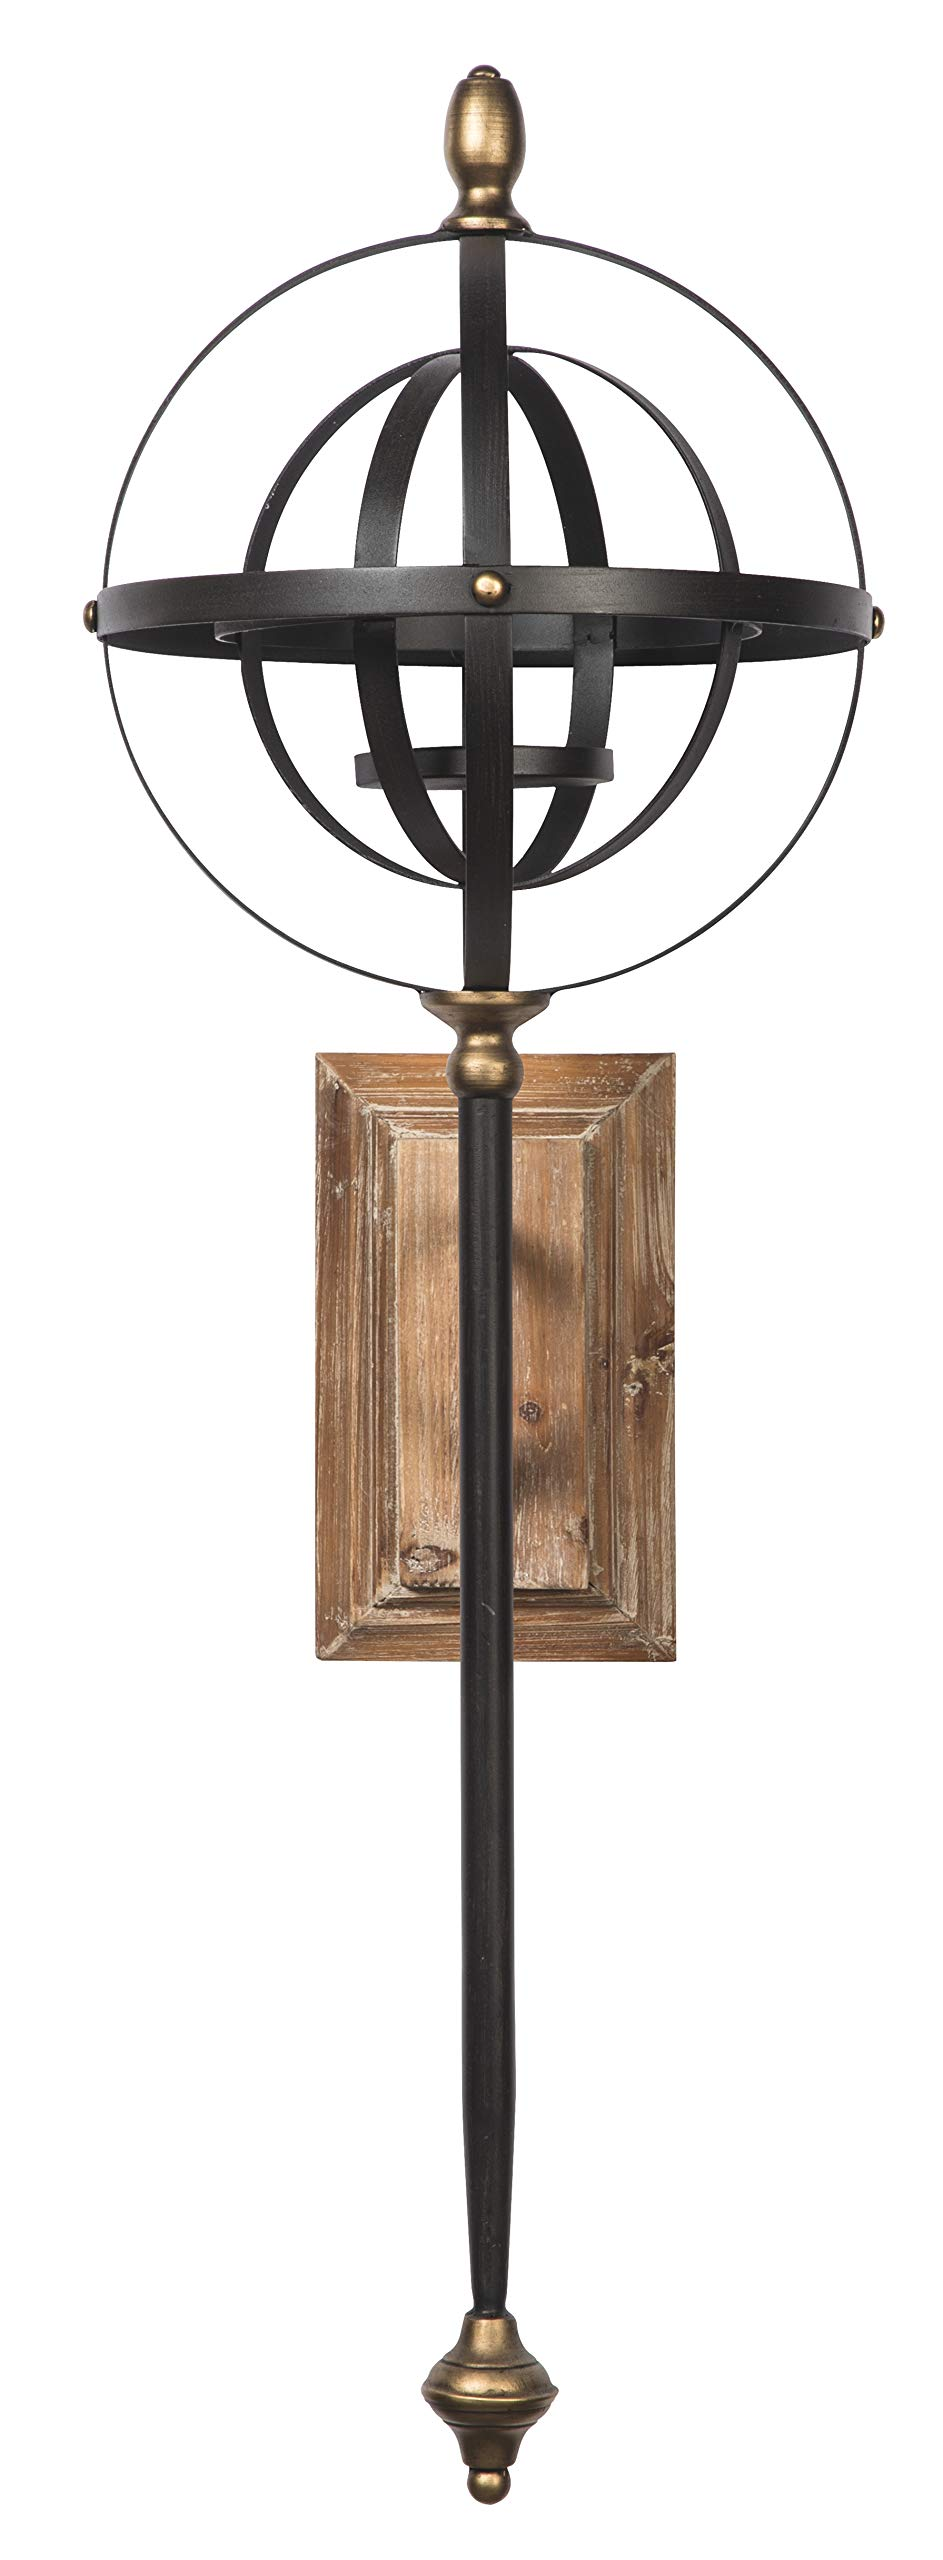 Ashley Furniture Signature Design - Dina Wall Sconce - Casual - Black/Gold Finish by Signature Design by Ashley